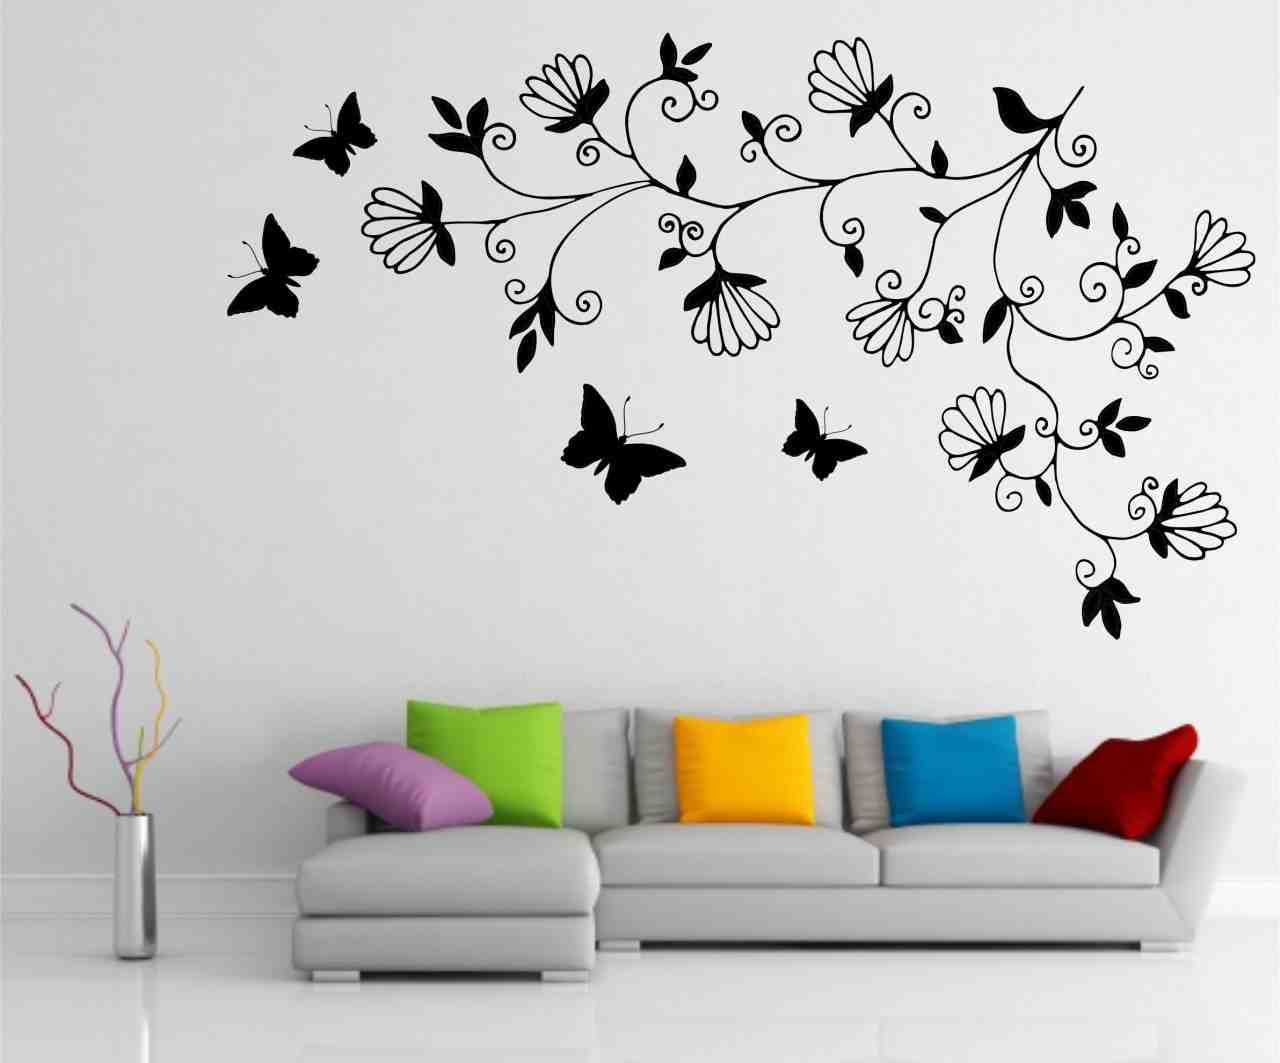 Wall Paintings For Living Room With Images Simple Wall